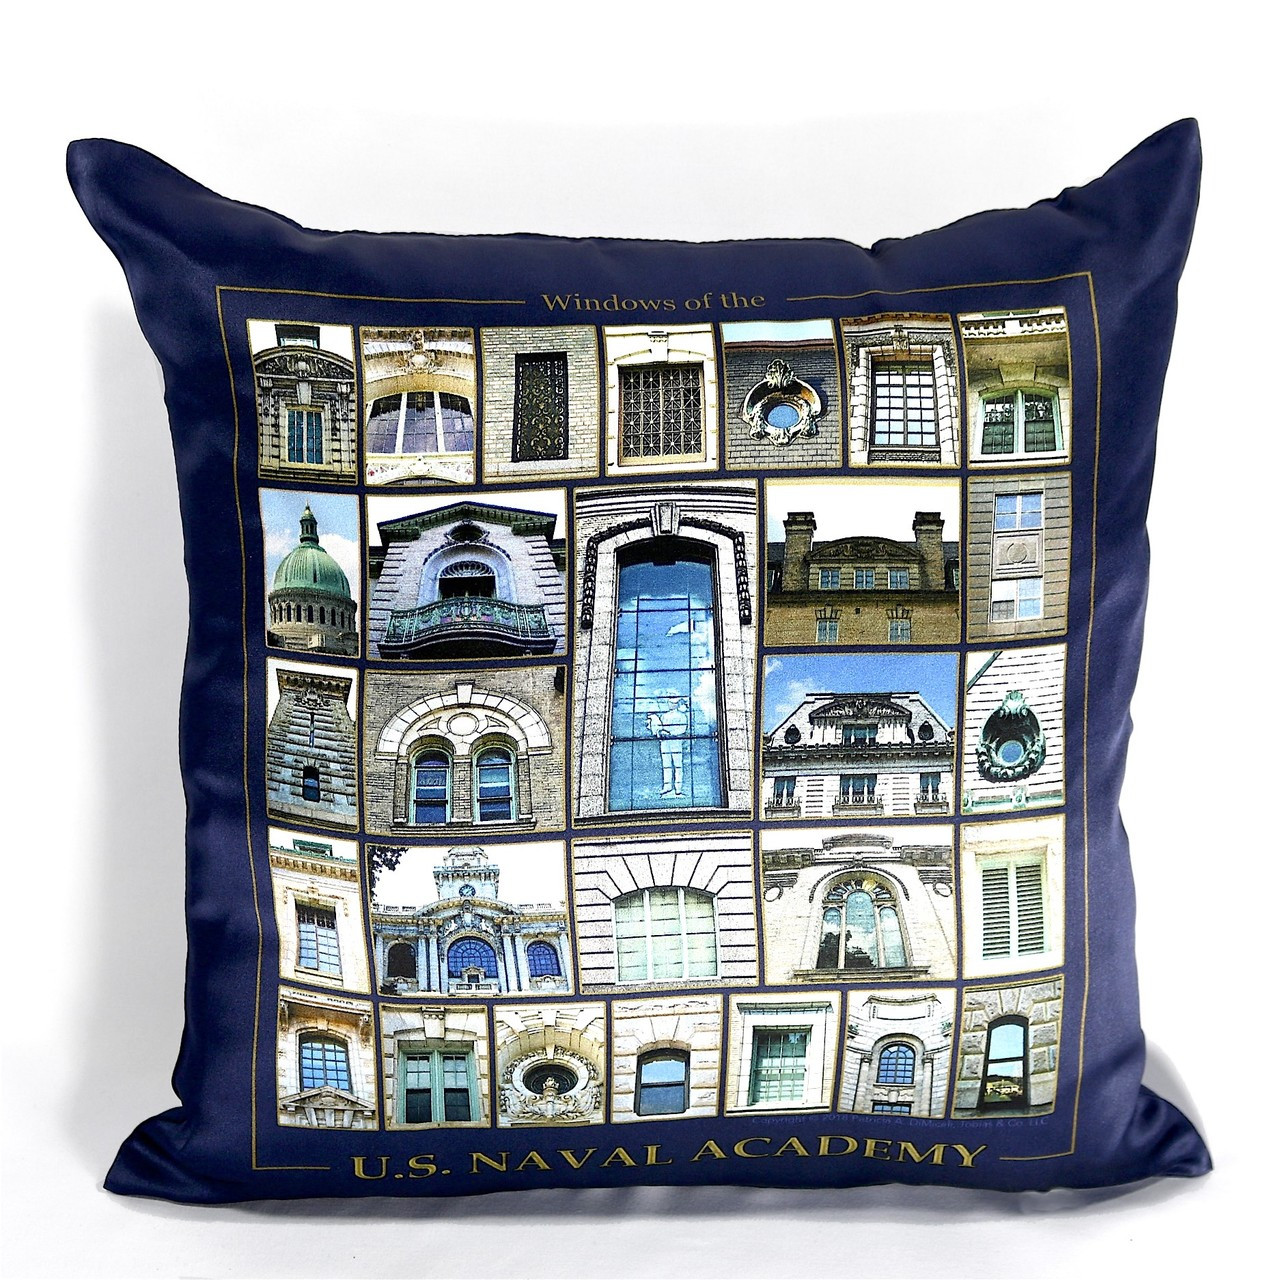 windows of the us naval academy silk satin pillow cover